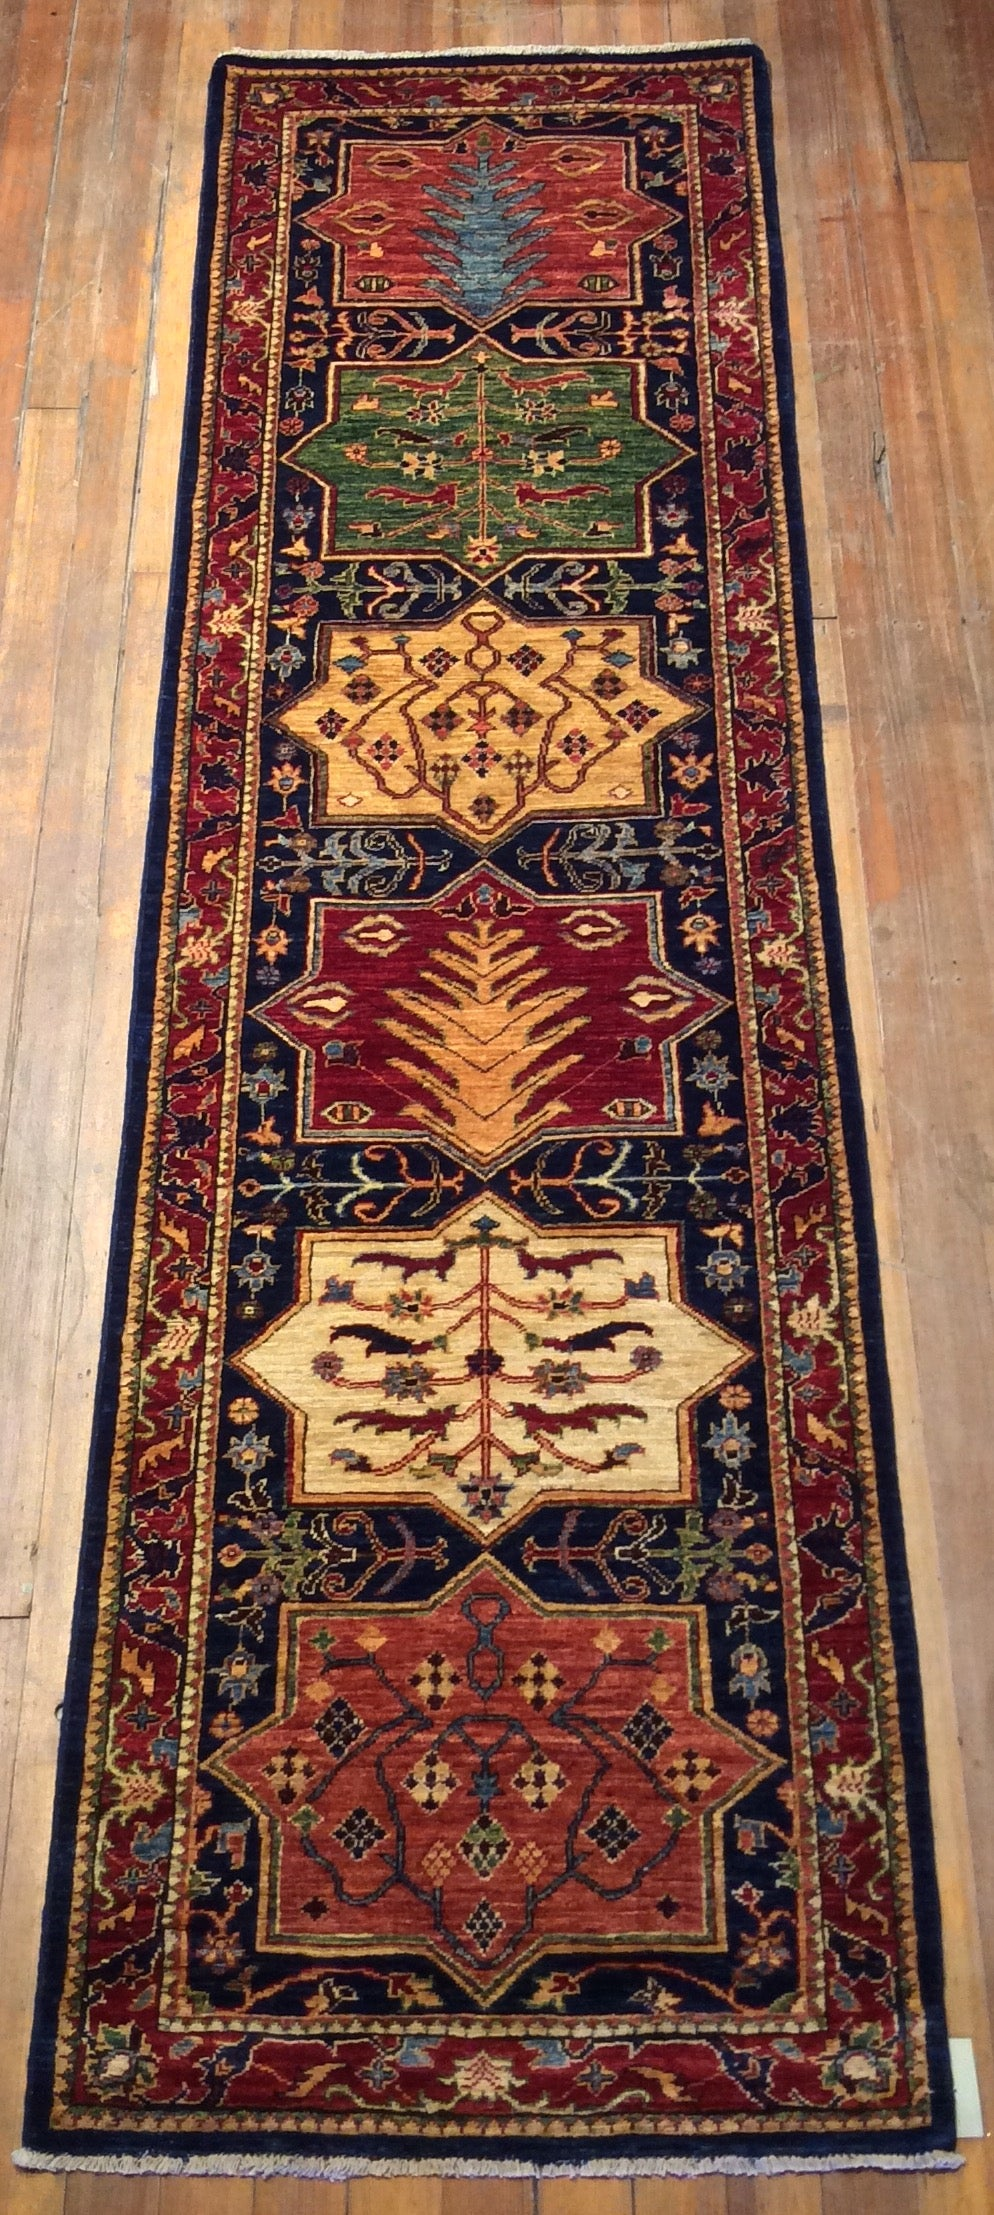 Royal Bakthari Rug.  9'.4